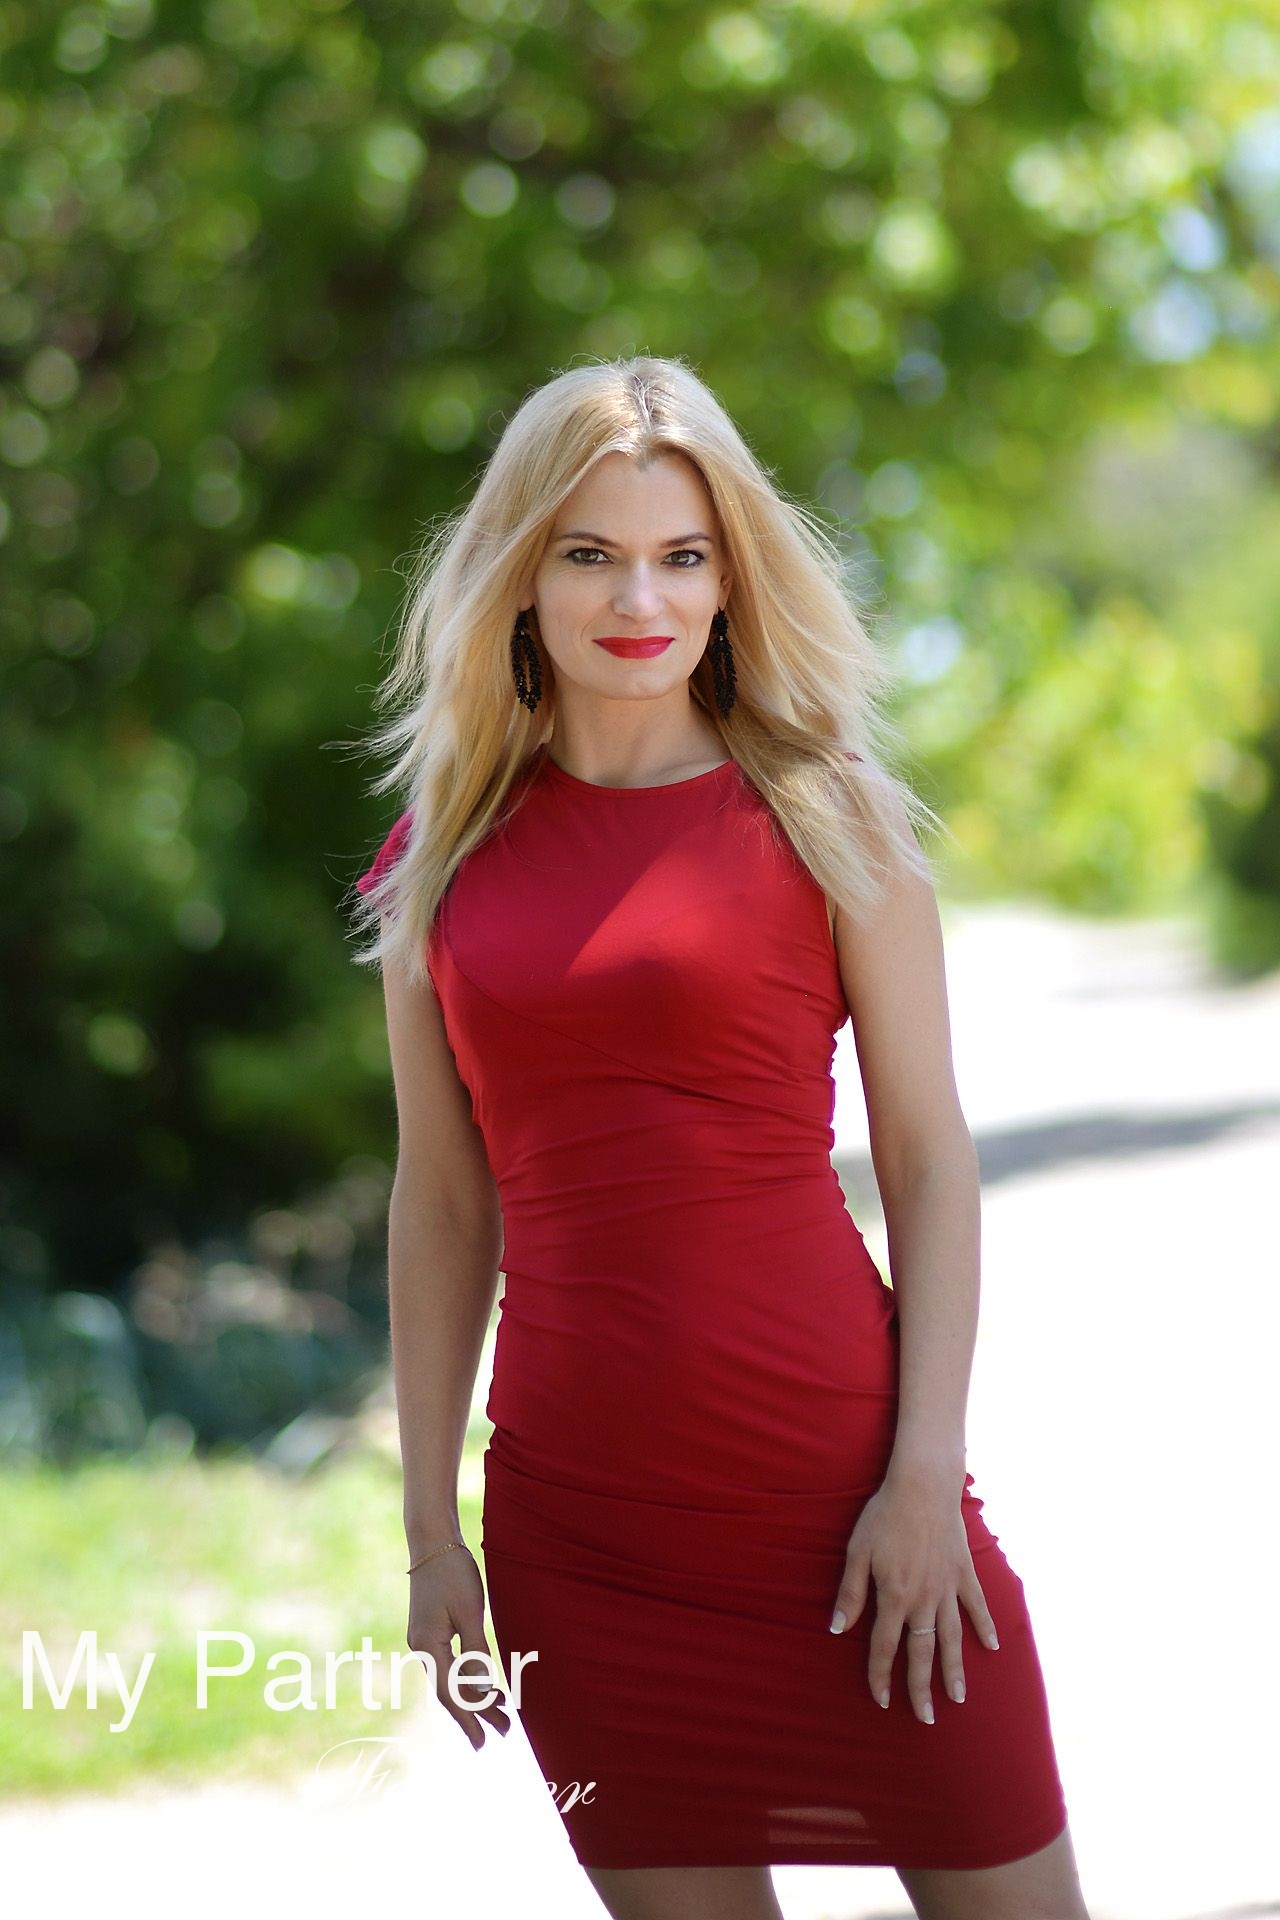 Dating Service to Meet Gorgeous Ukrainian Girl Marina from Kharkov, Ukraine